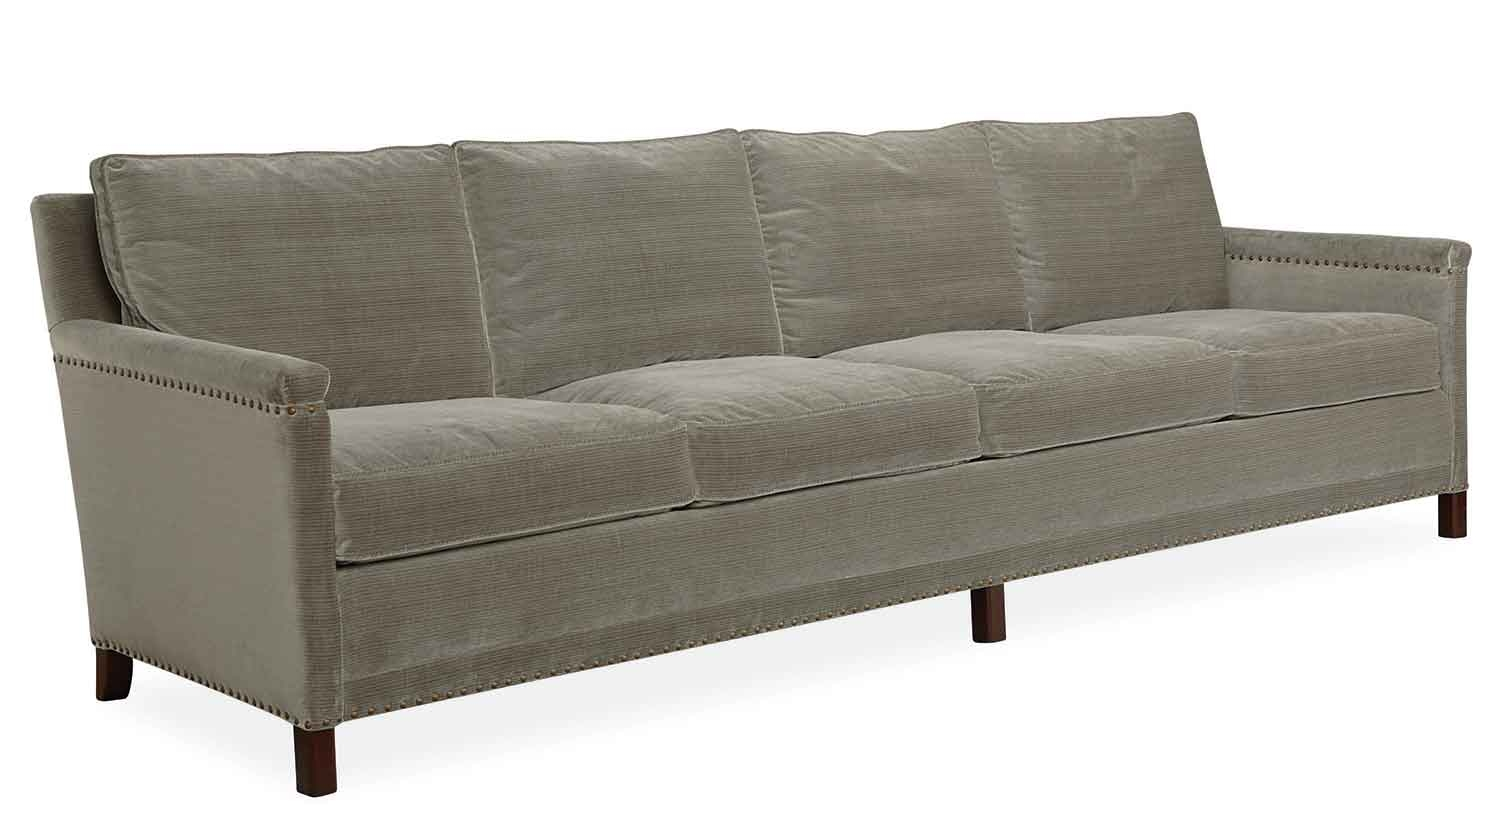 Circle Furniture Paige 4 Seat Sofa Sofas Acton Circle Furniture Regarding 4 Seat Sofas (Image 5 of 15)